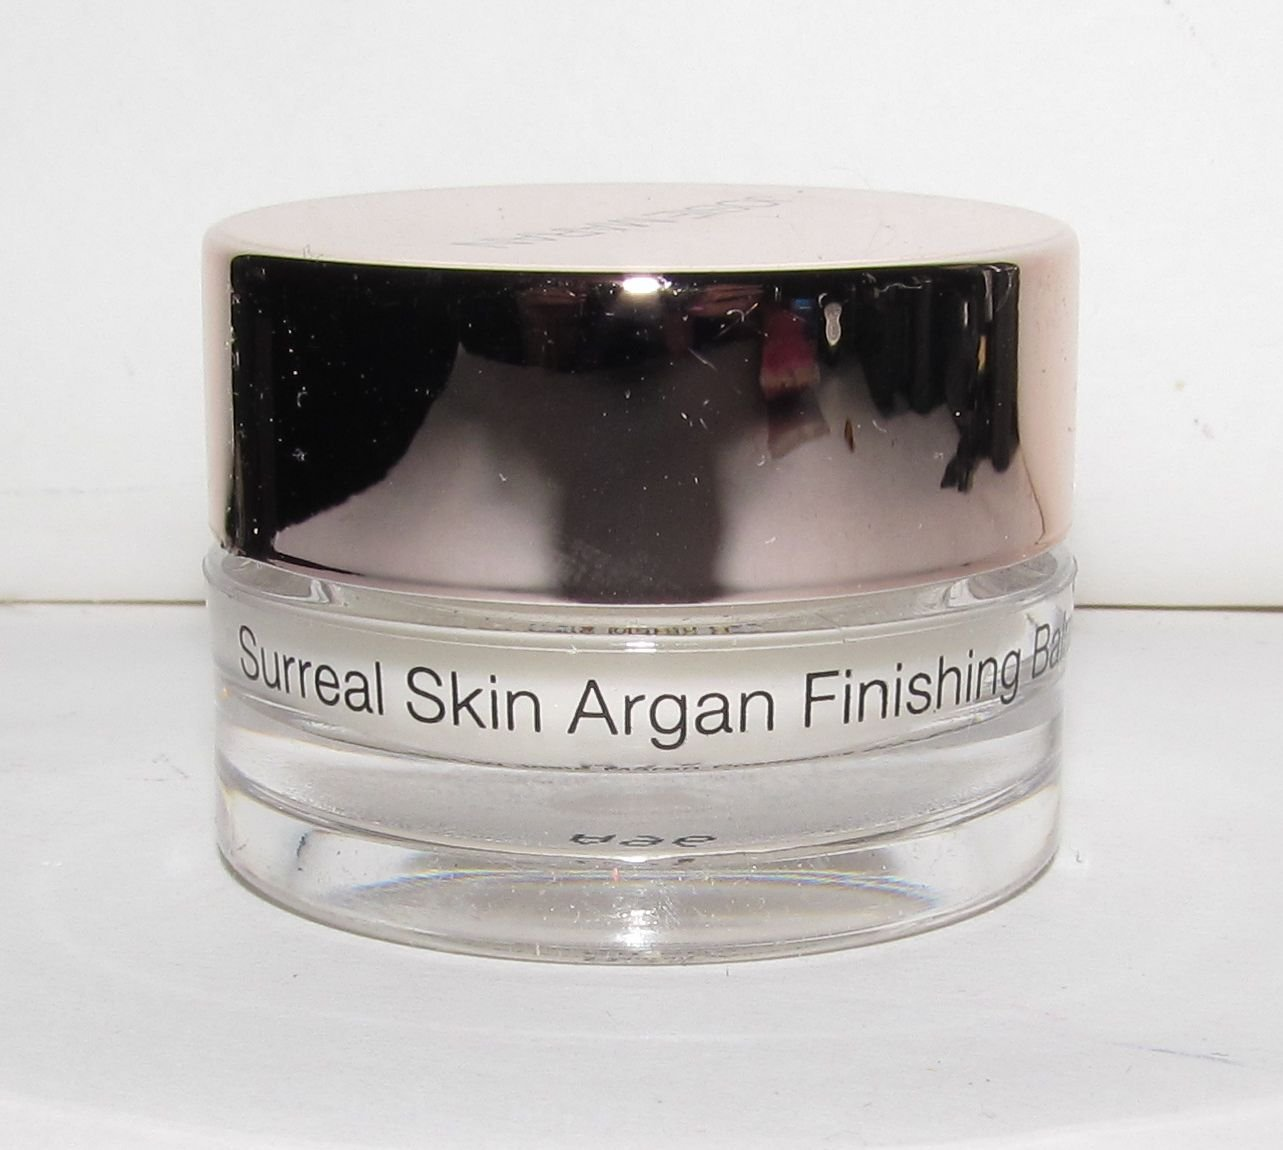 Josie Maran - Etheric Surreal Skin Argan Finishing Balm - Travel Size